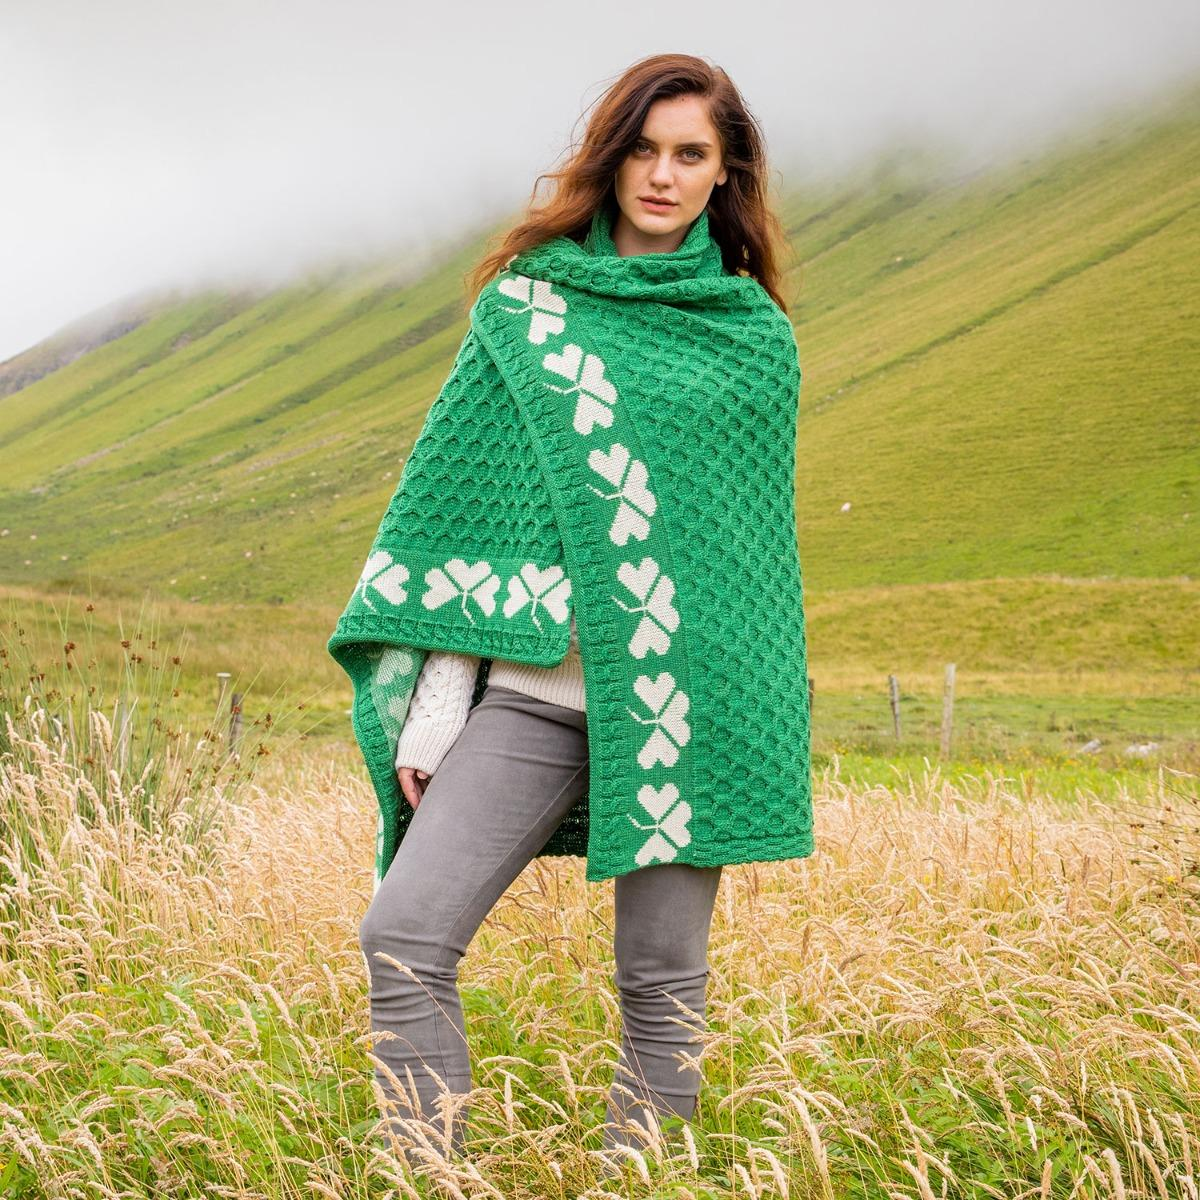 Shamrock blanket Irish homeware